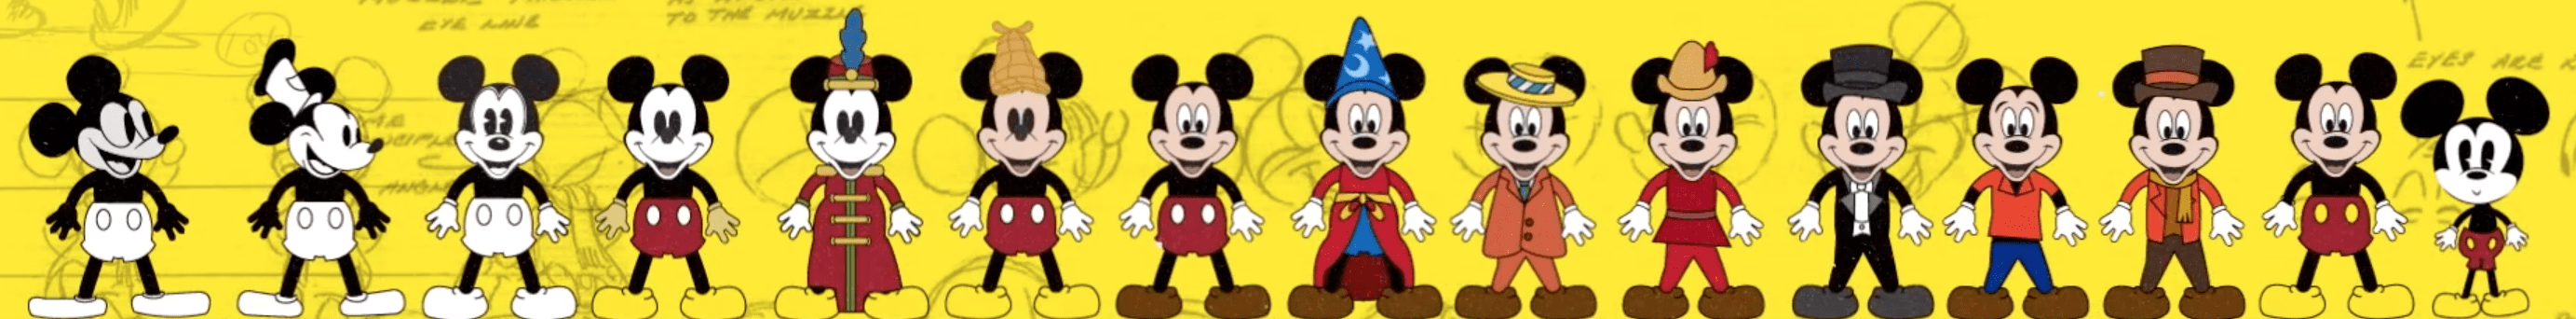 How Mickey Mouse Has Changed Over Time (Video)